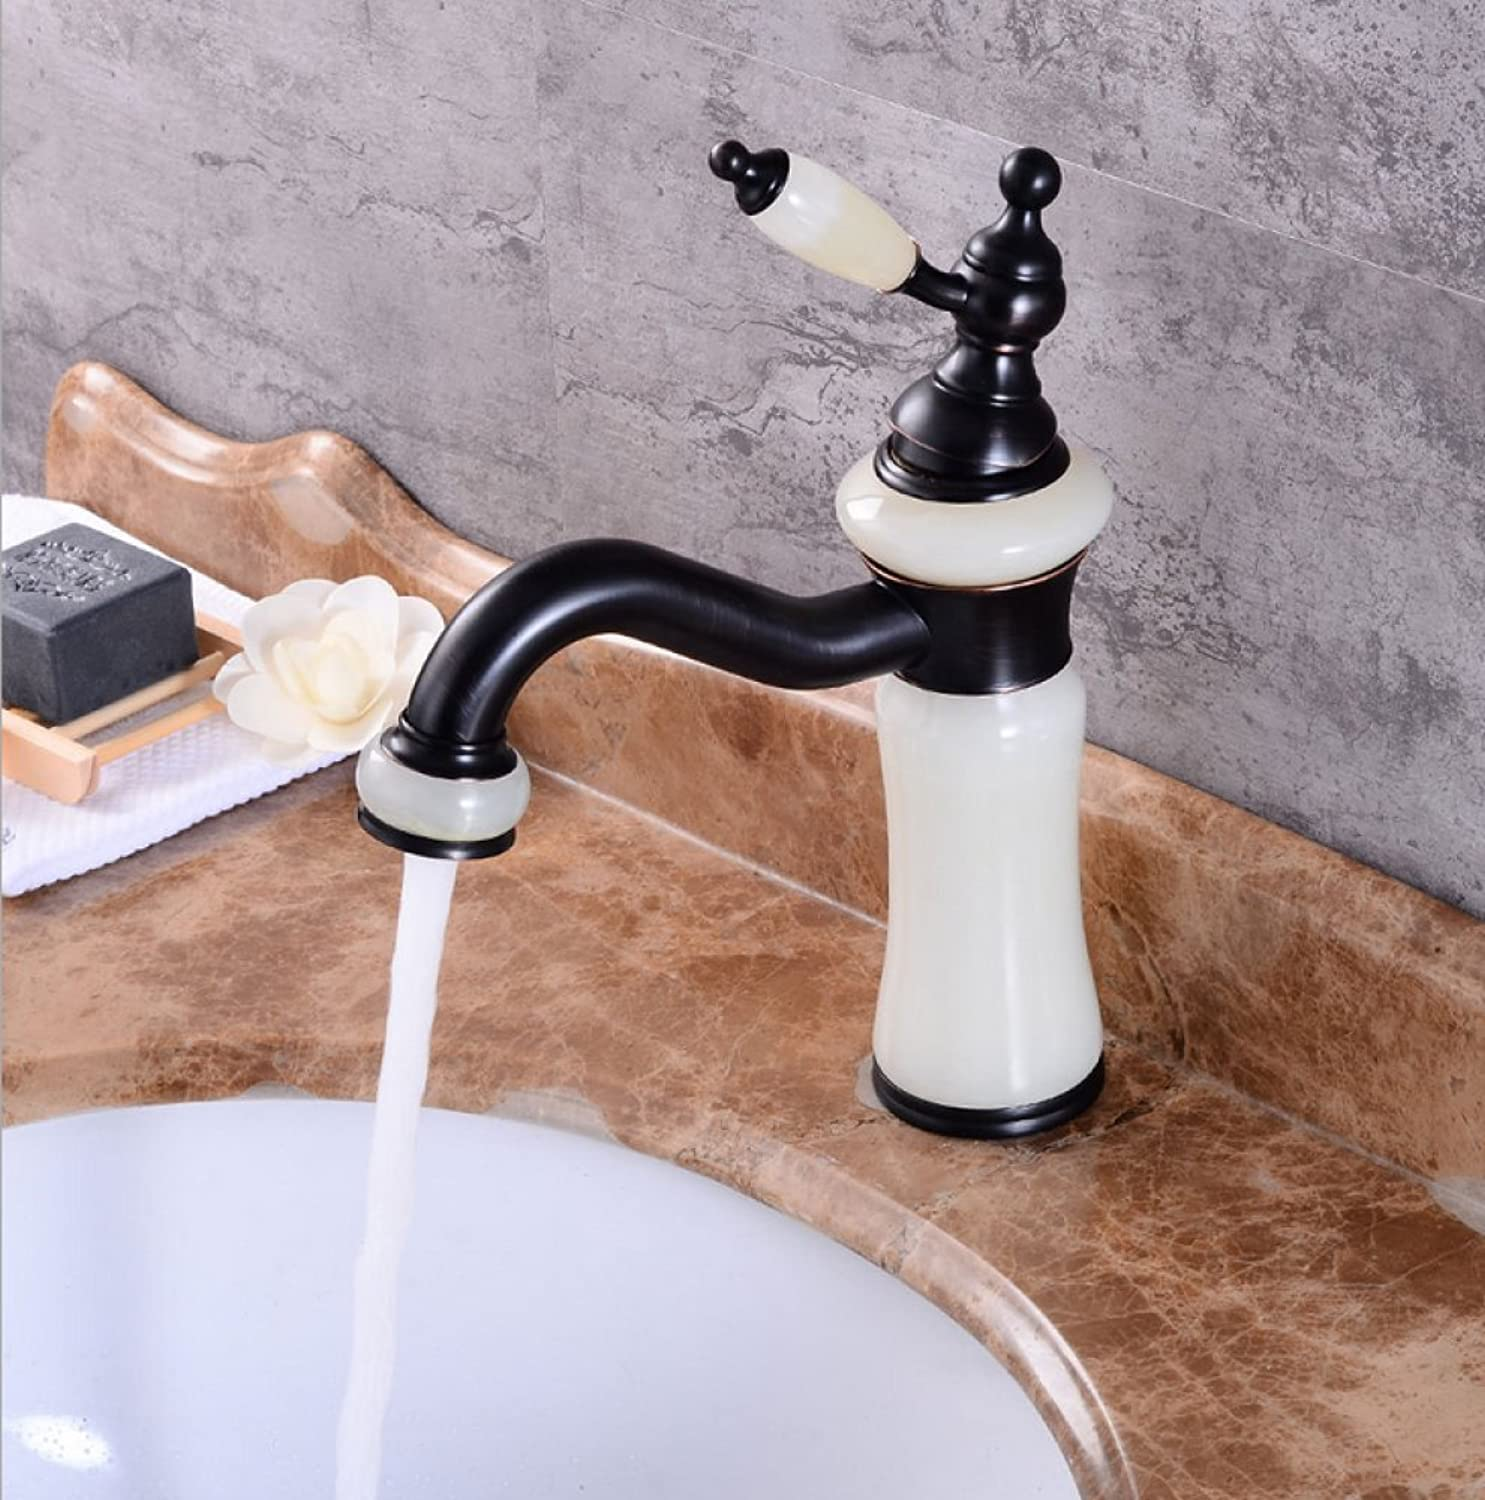 GZF Bathroom Sink Taps Faucet European black ancient washbasin hot and cold faucet natural jade faucet bathroom redating vintage washbasin faucet mixing faucet washbasin faucet single-unit